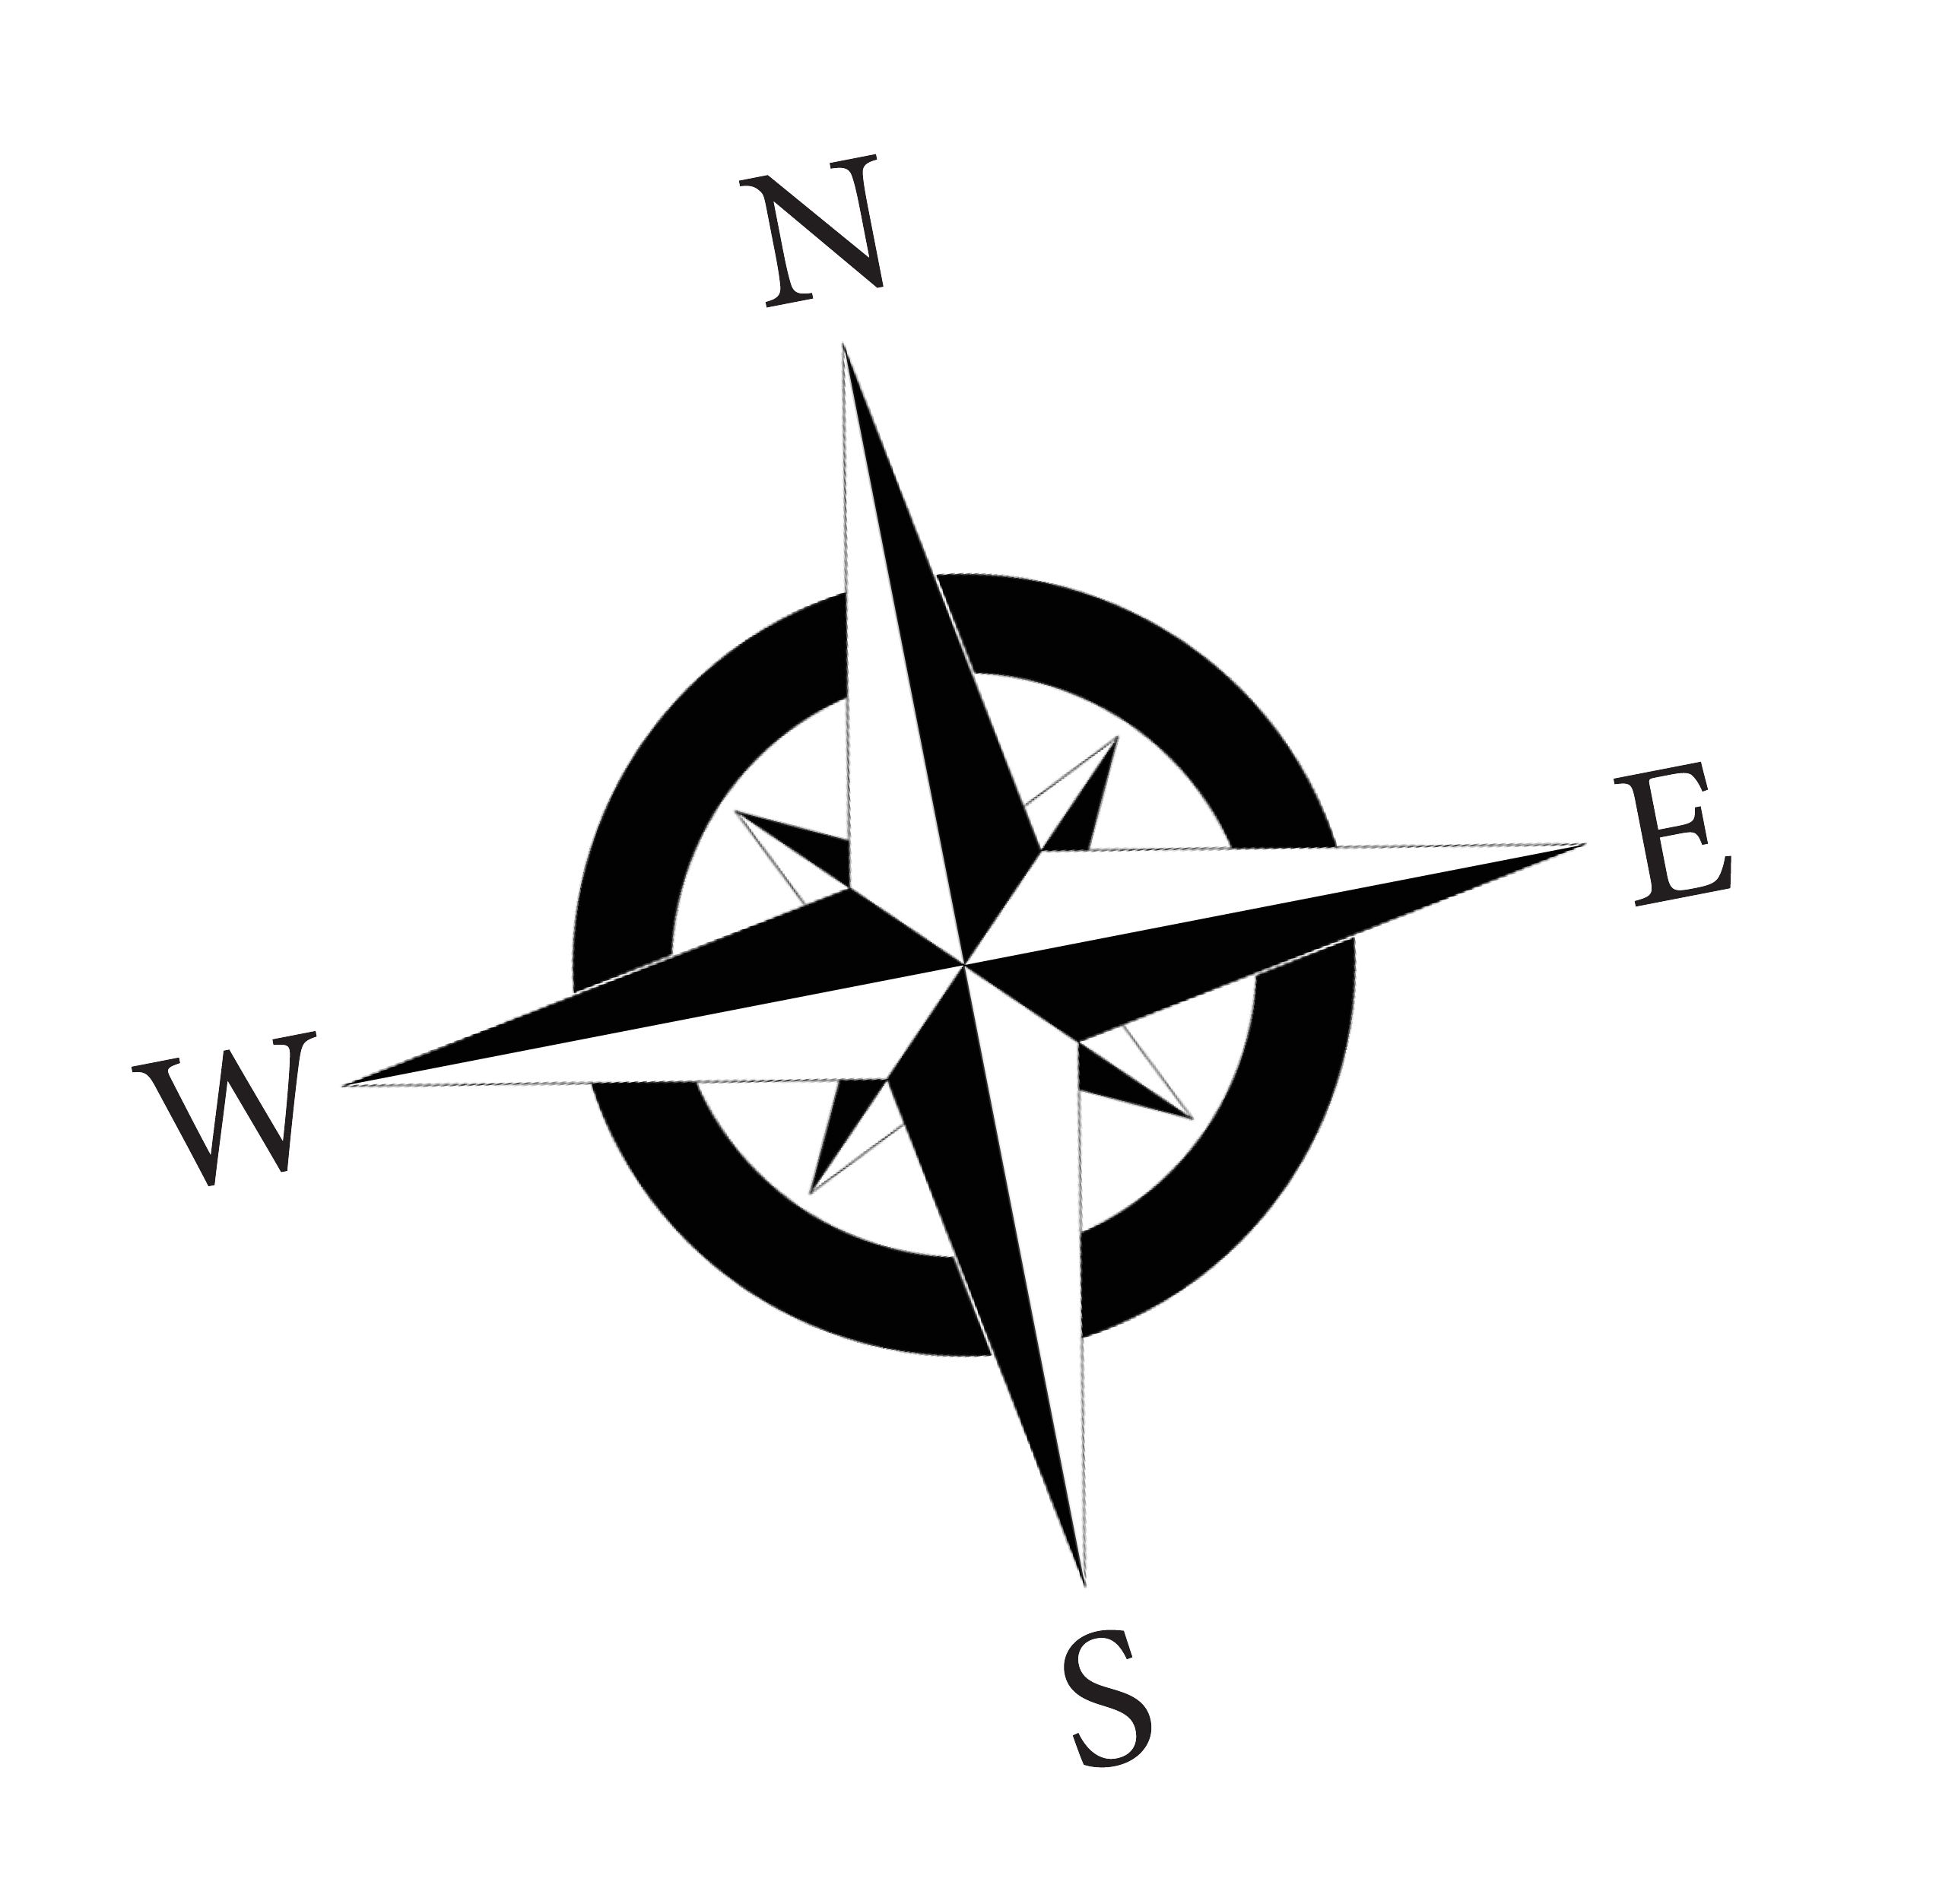 Compass Rose Nsew Bw Final Jpg Simple Compass Tattoo Compass Tattoo Design Compass Rose Tattoo